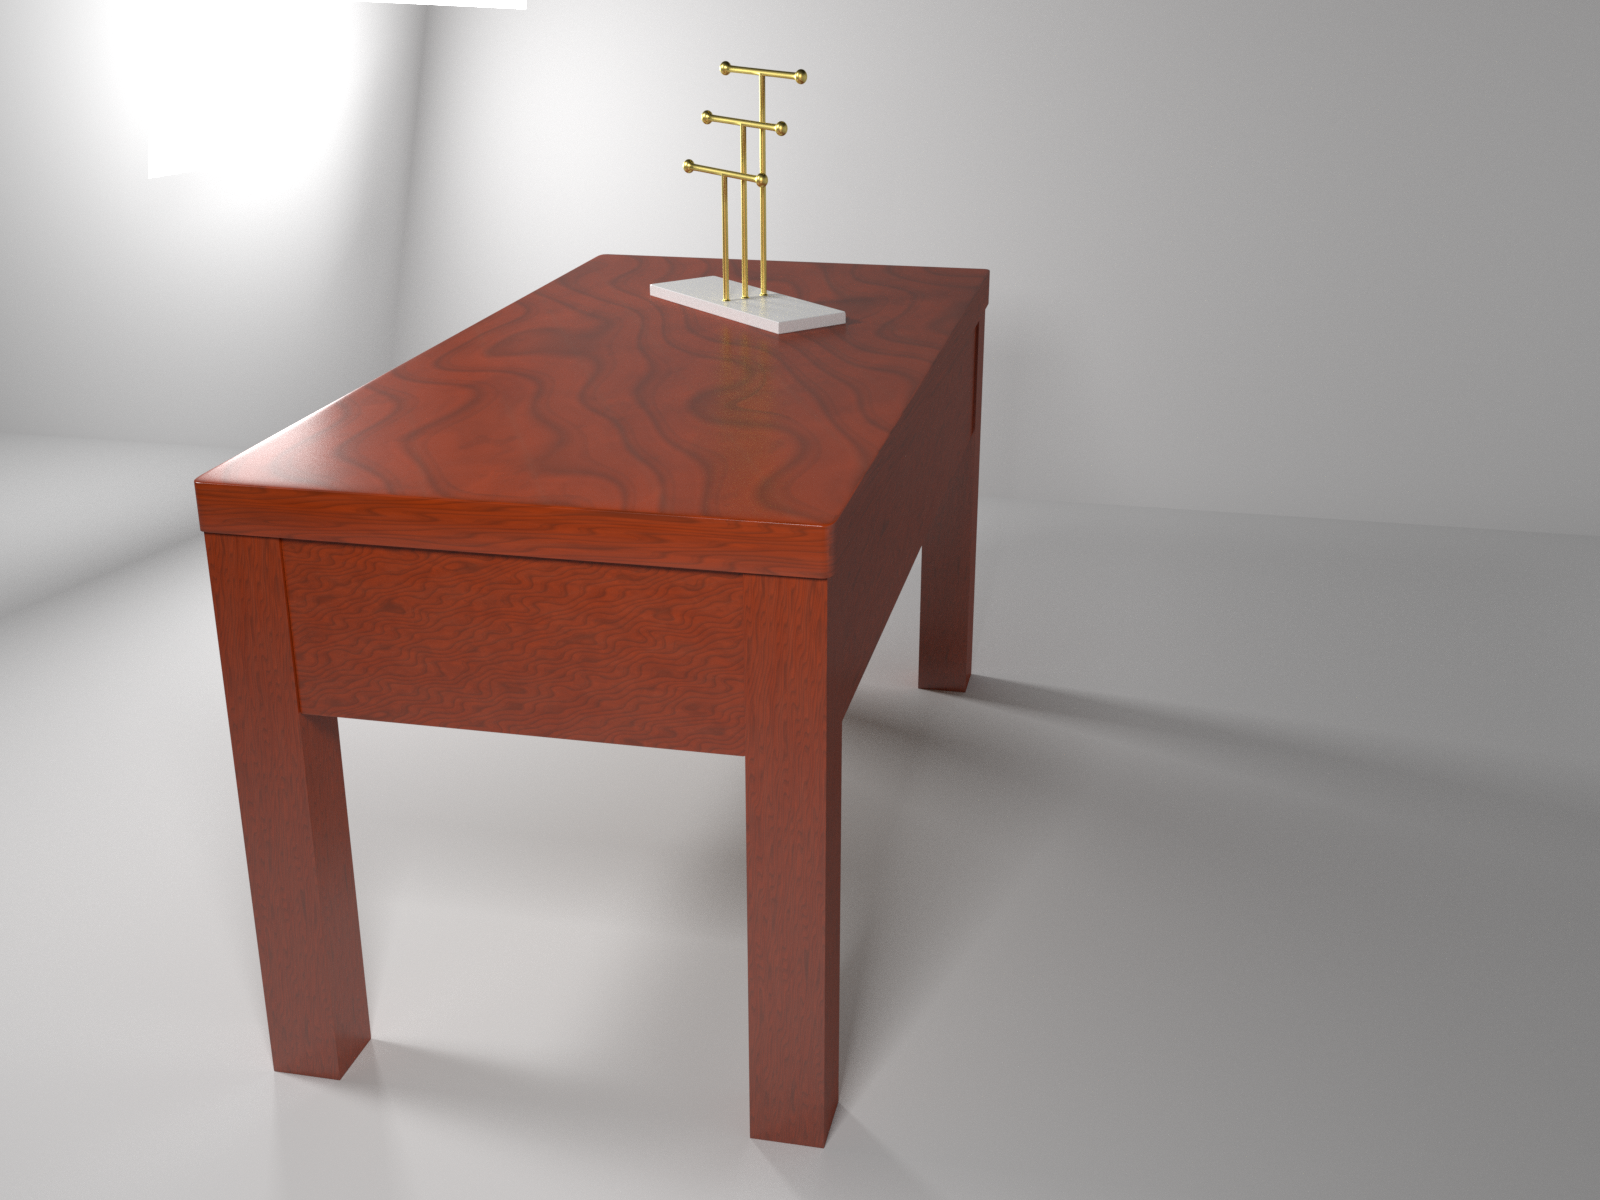 Golden jewelry holder on mahogany desk preview image 3